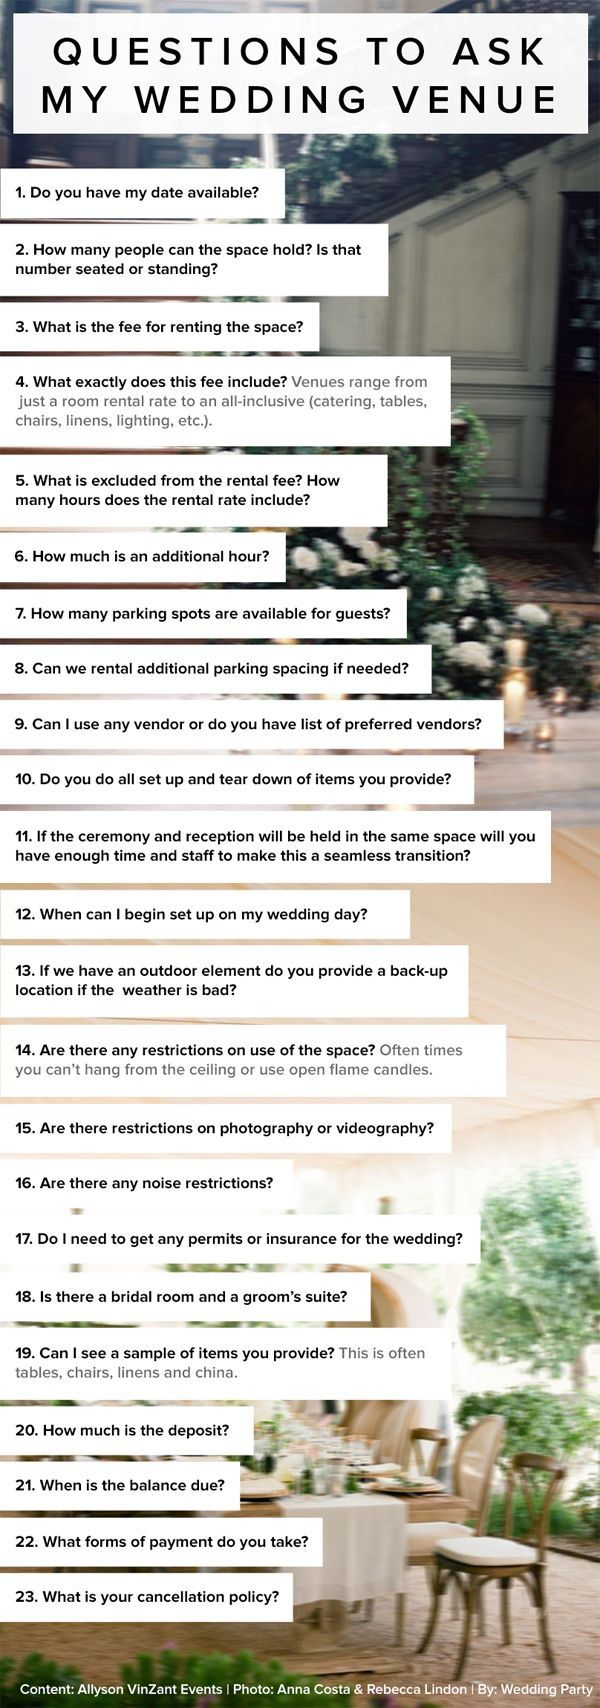 Questions to ask the venue.